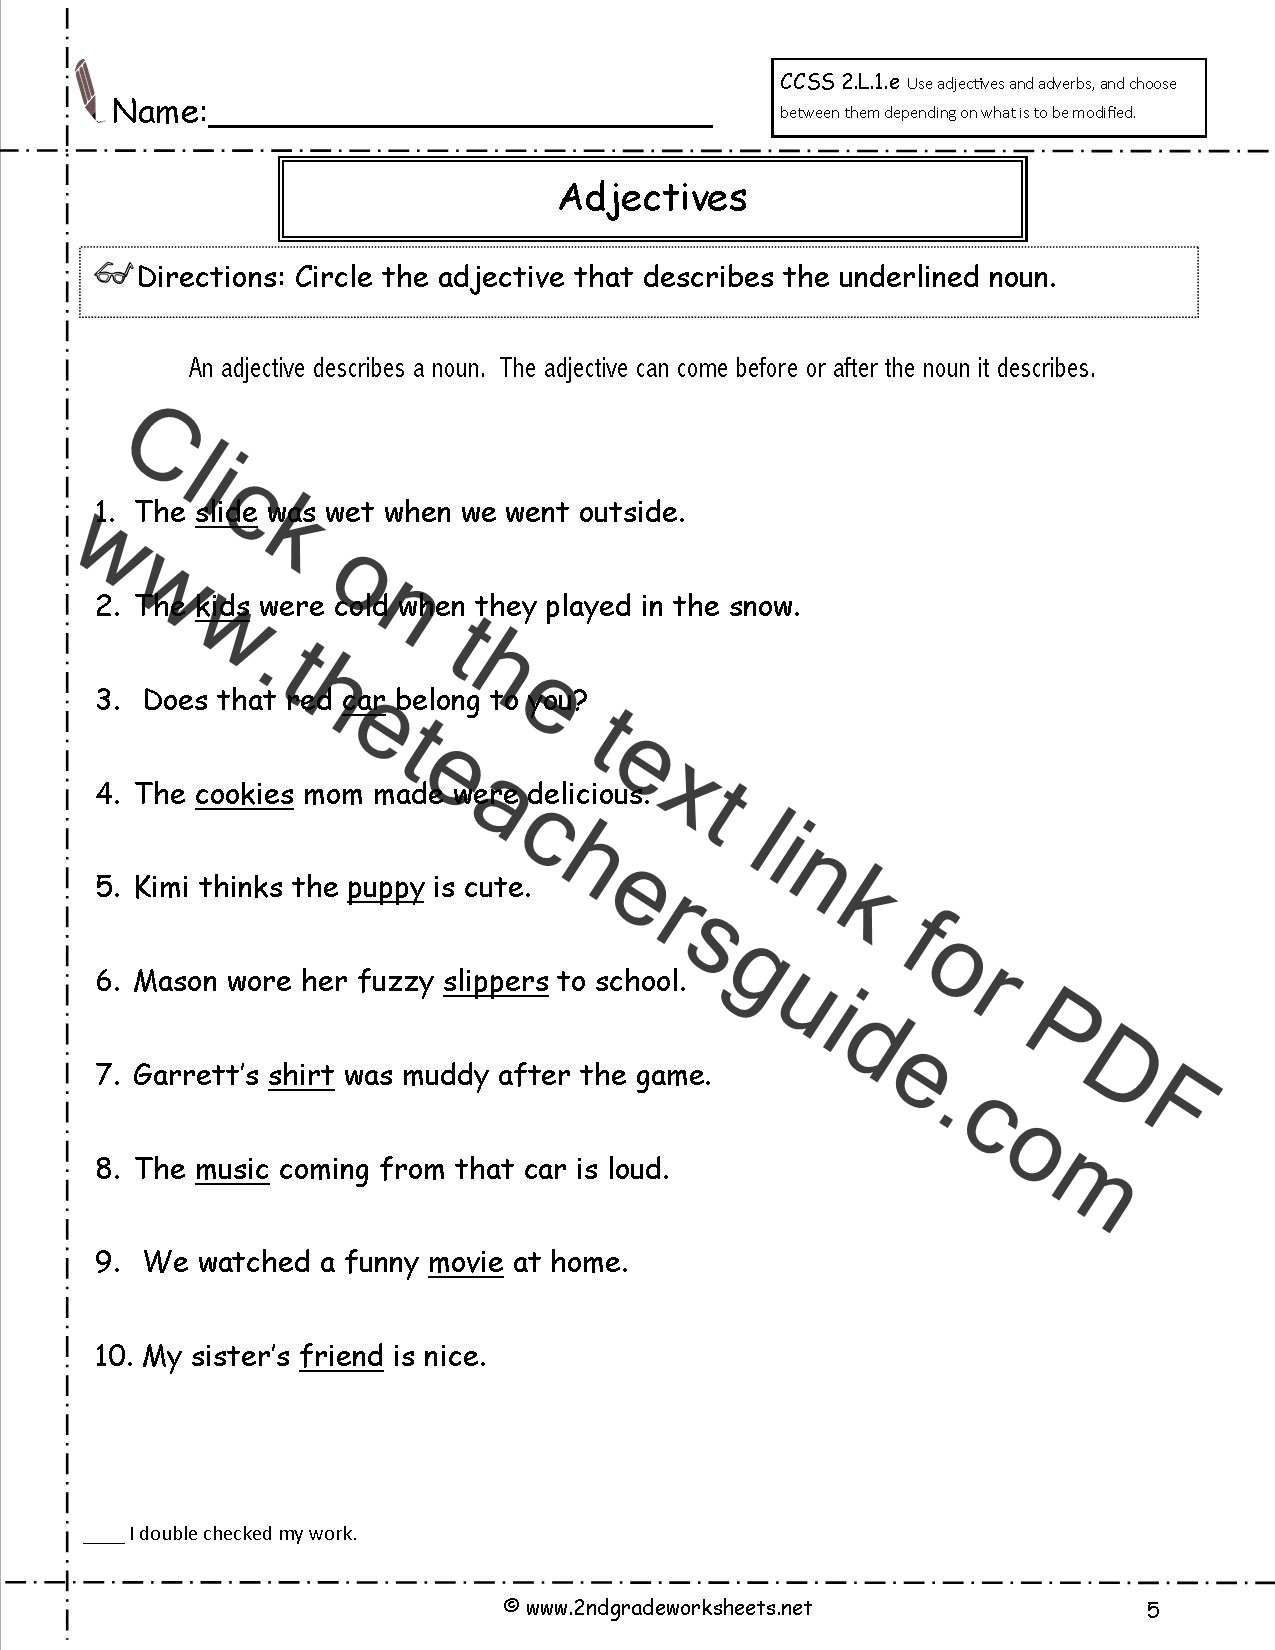 Worksheet Adverbs Worksheets For Grade 3 worksheet adverbs for grade 3 noconformity free 2 adjectives and worksheets 3